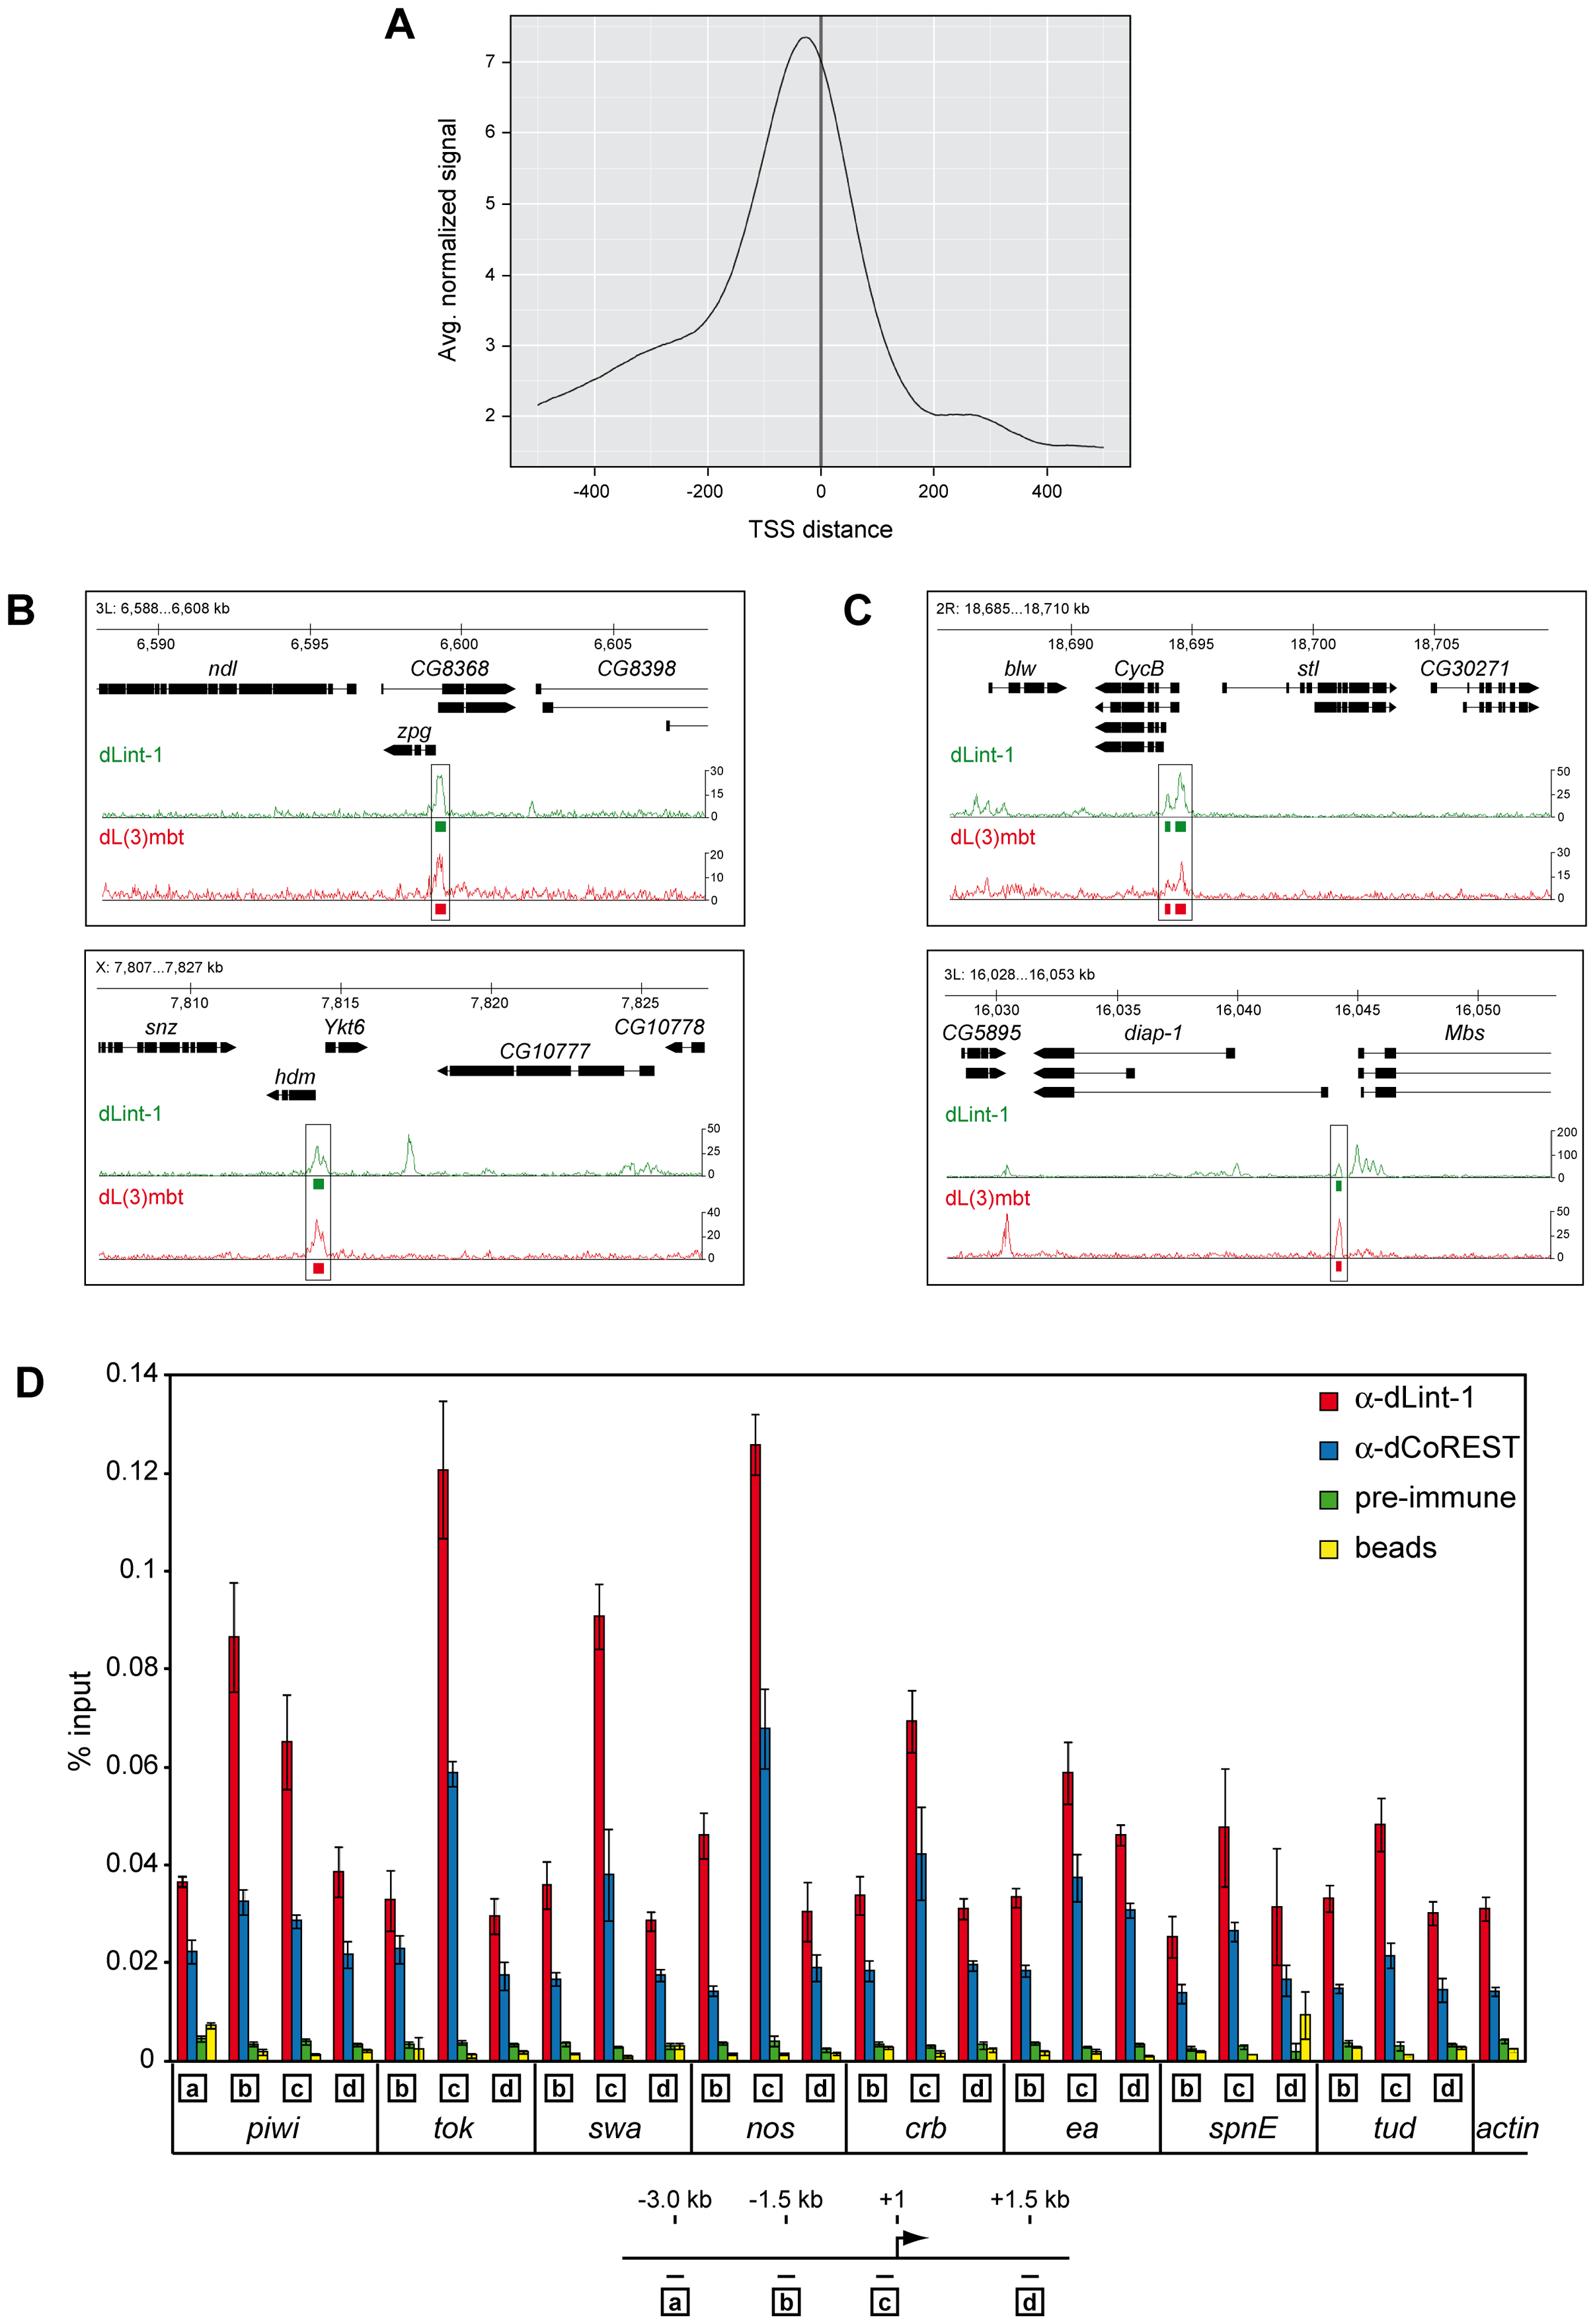 LINT binds to genes deregulated in <i>l(3)mbt<sup>ts</sup></i> brain tumours.